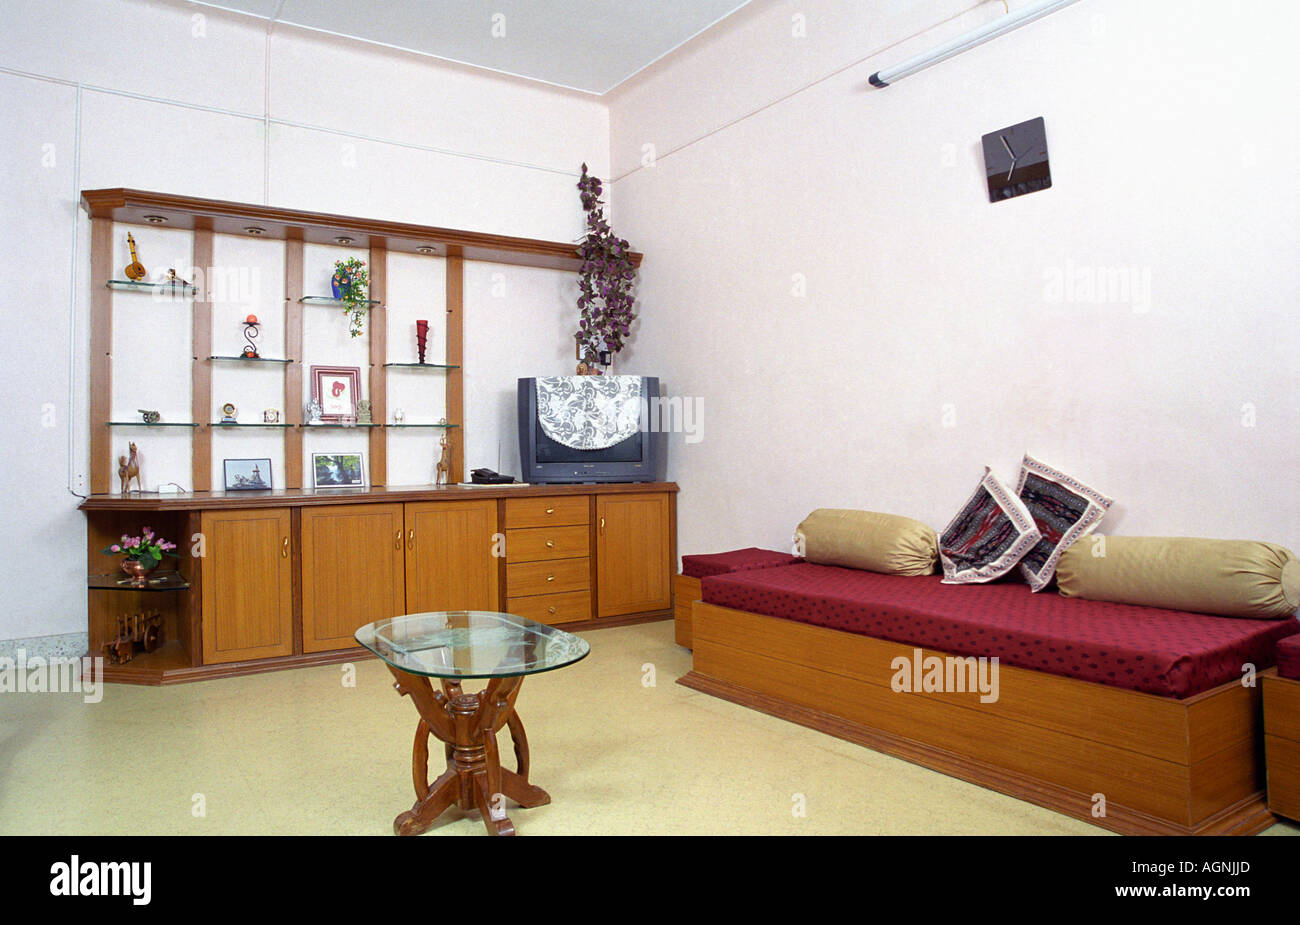 interior - a living room with tradition indian seating arrangement